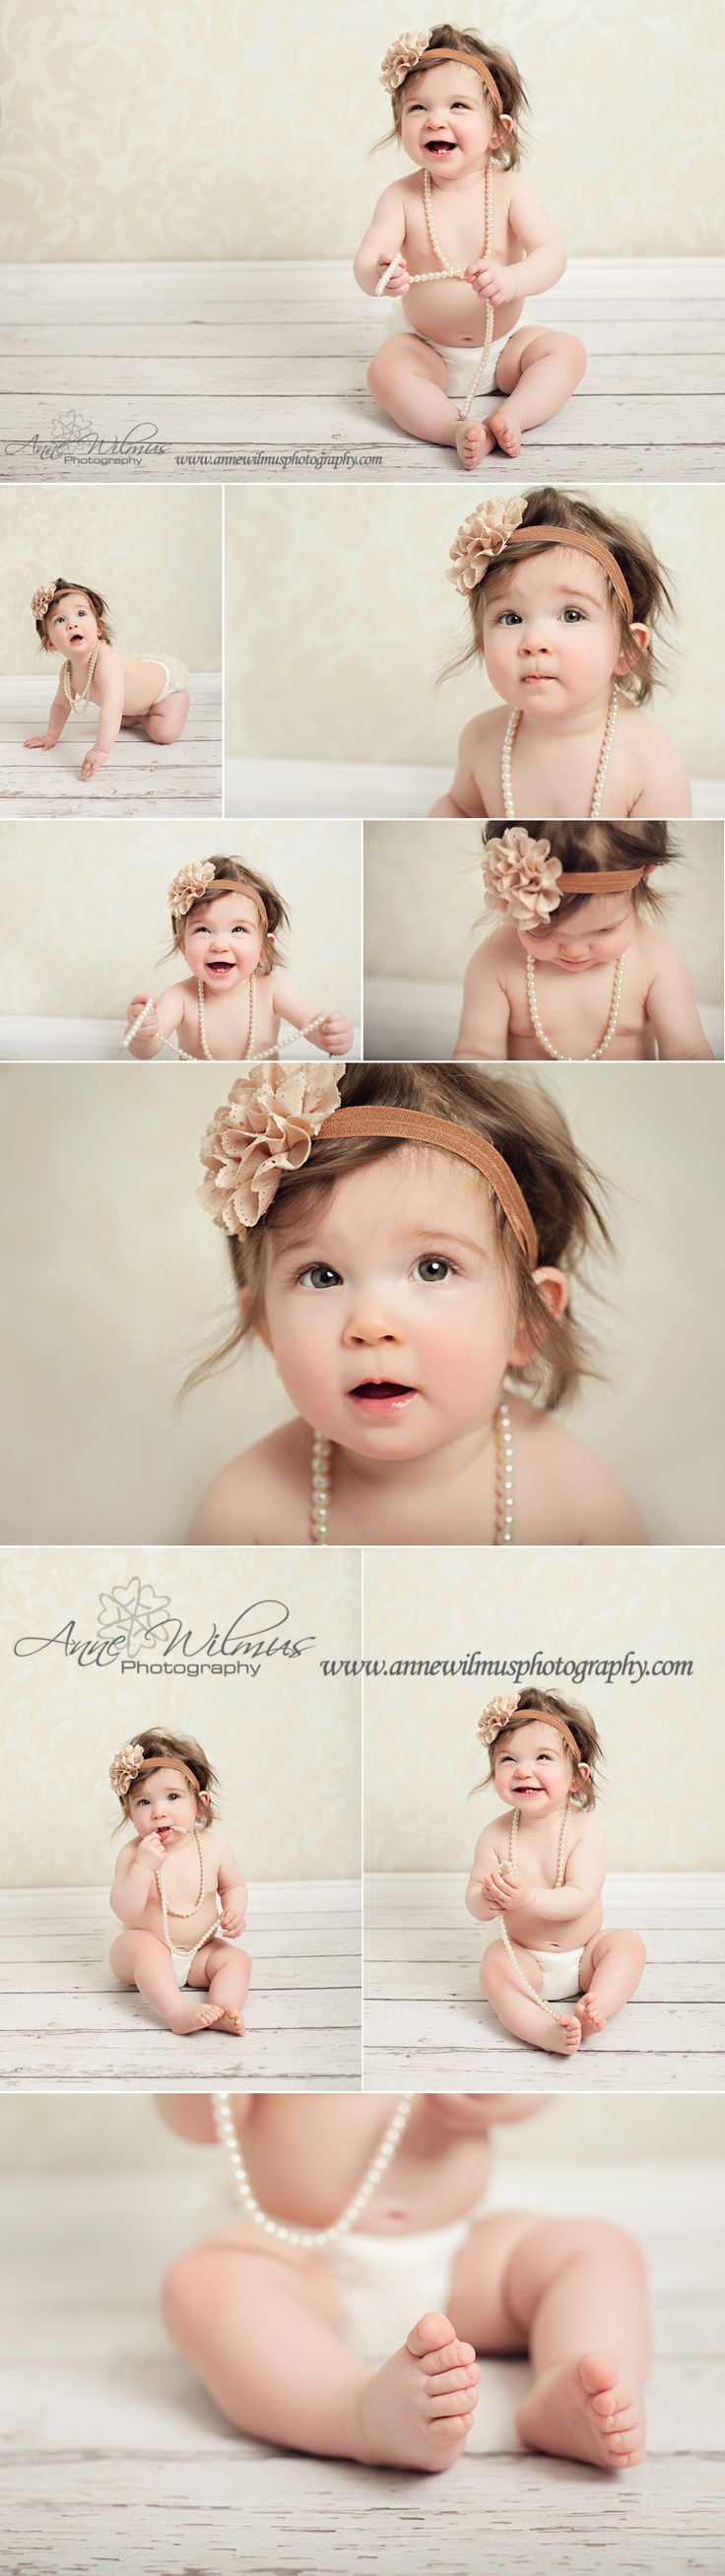 Best 25 6 month photos ideas on Pinterest